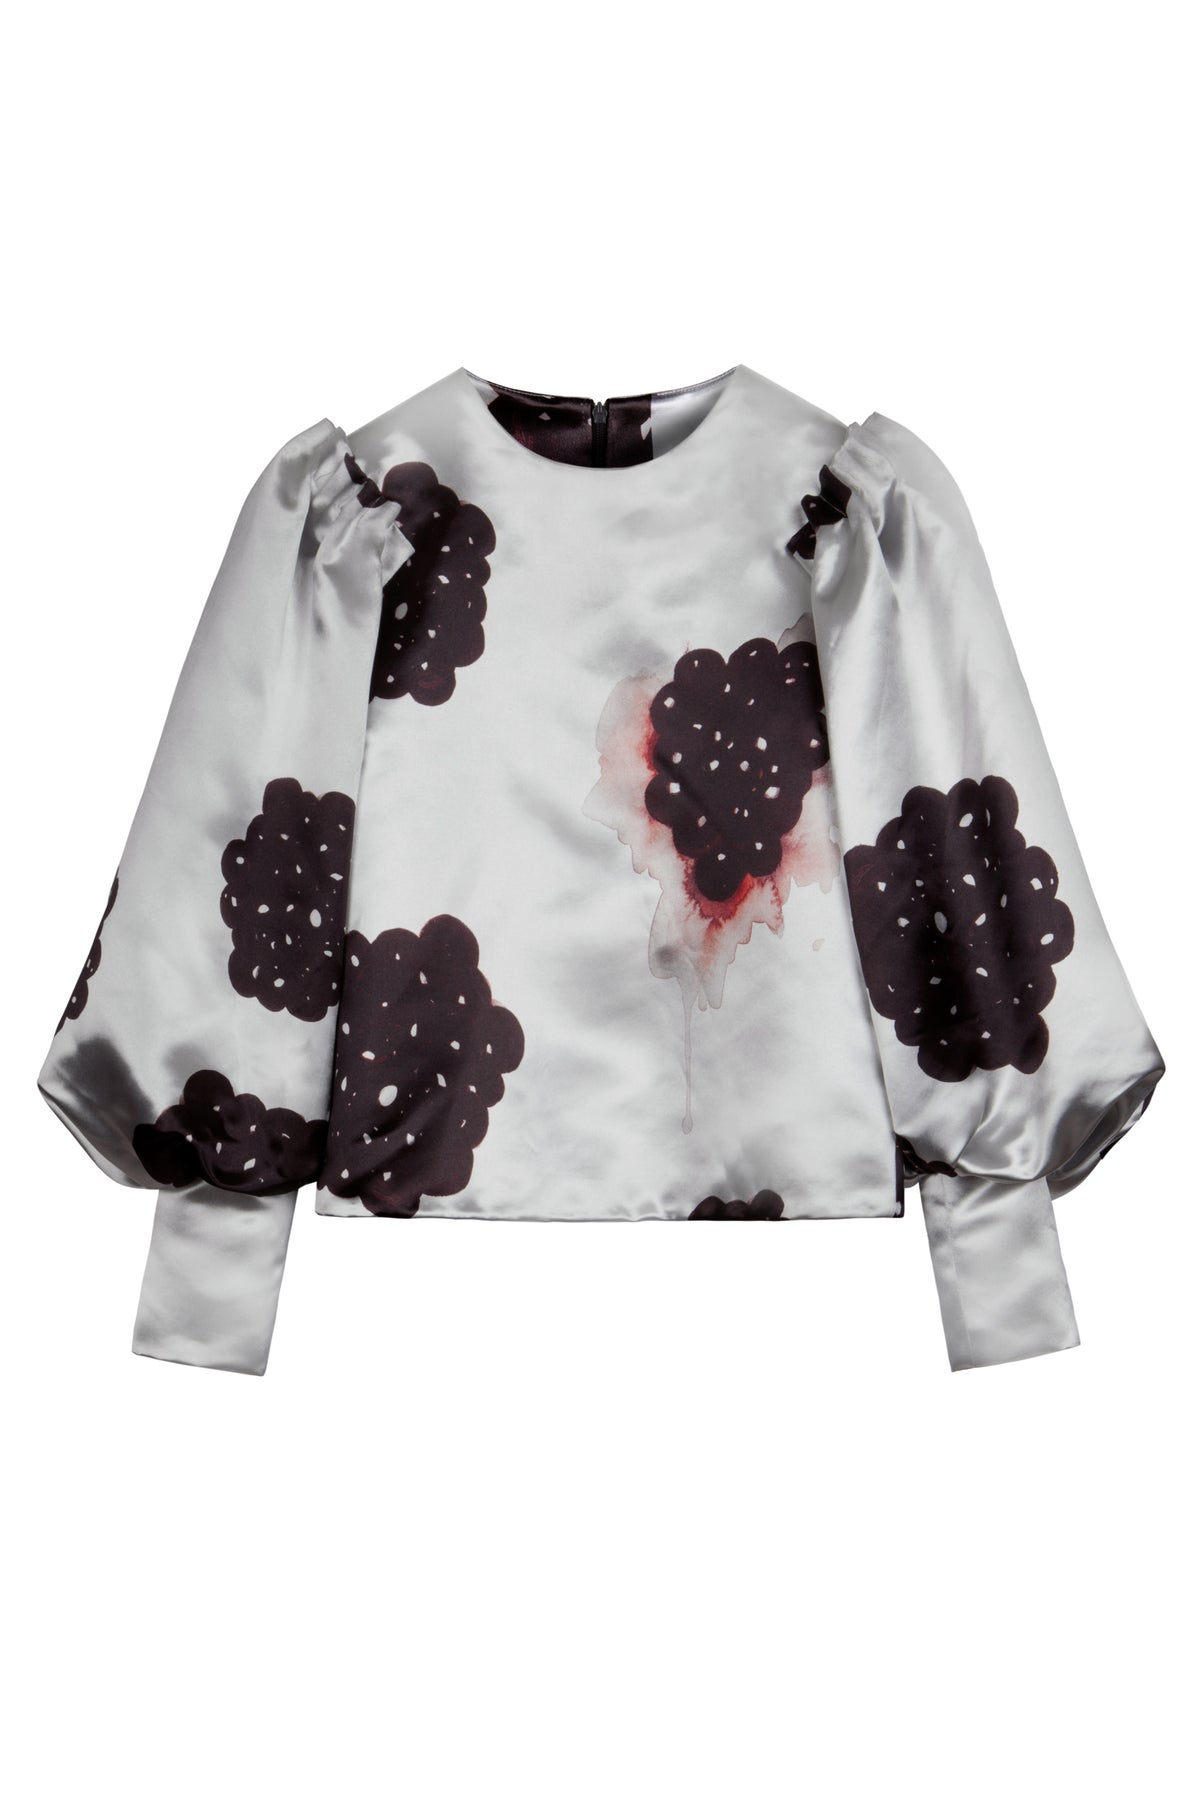 Image of Silver Bleeding Berry Top